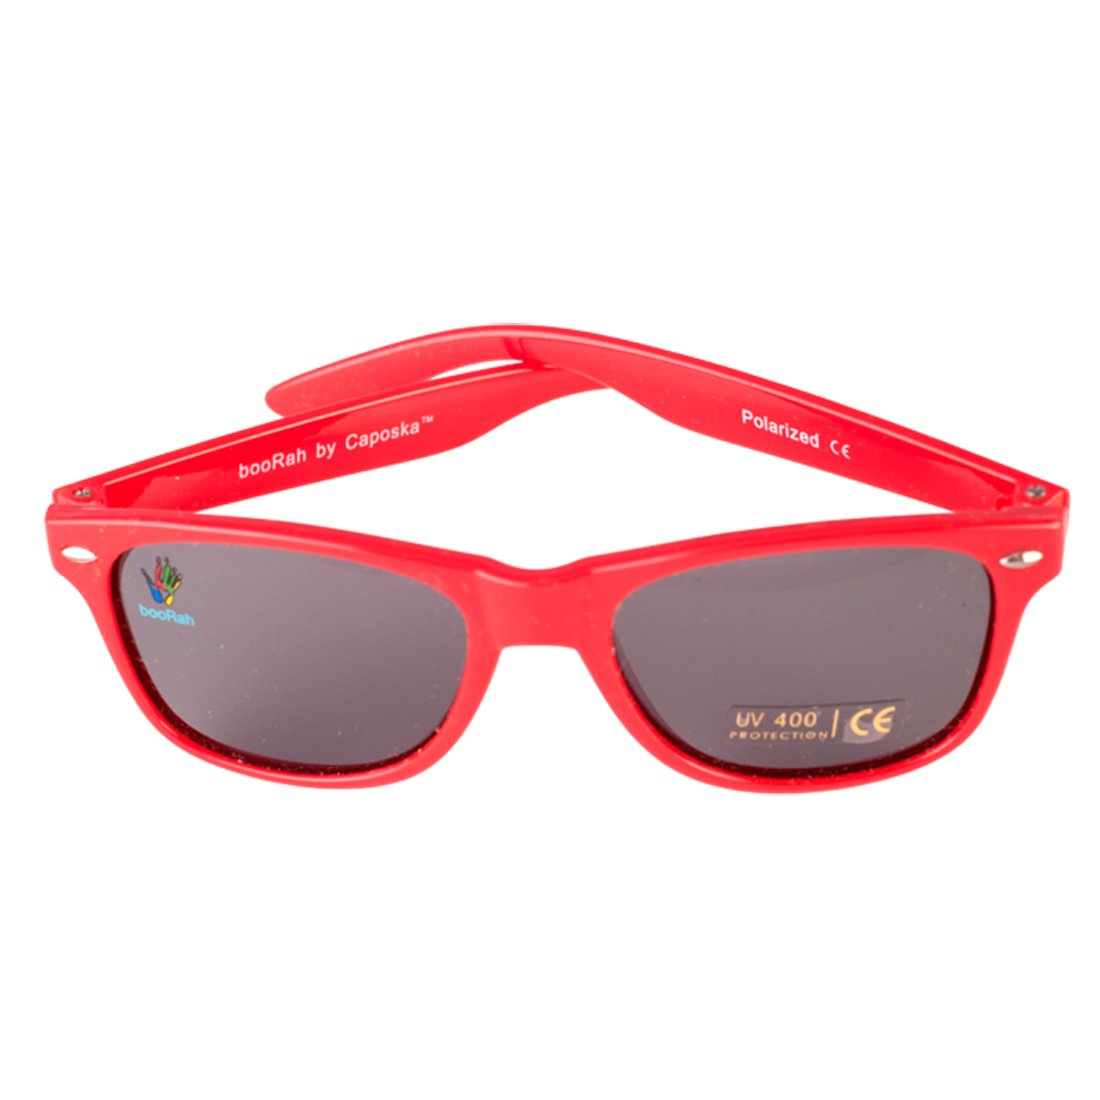 Blinders by booRah® - Childrens Wayfarer Style Sunglasses Full UV400 Protection and Polarised